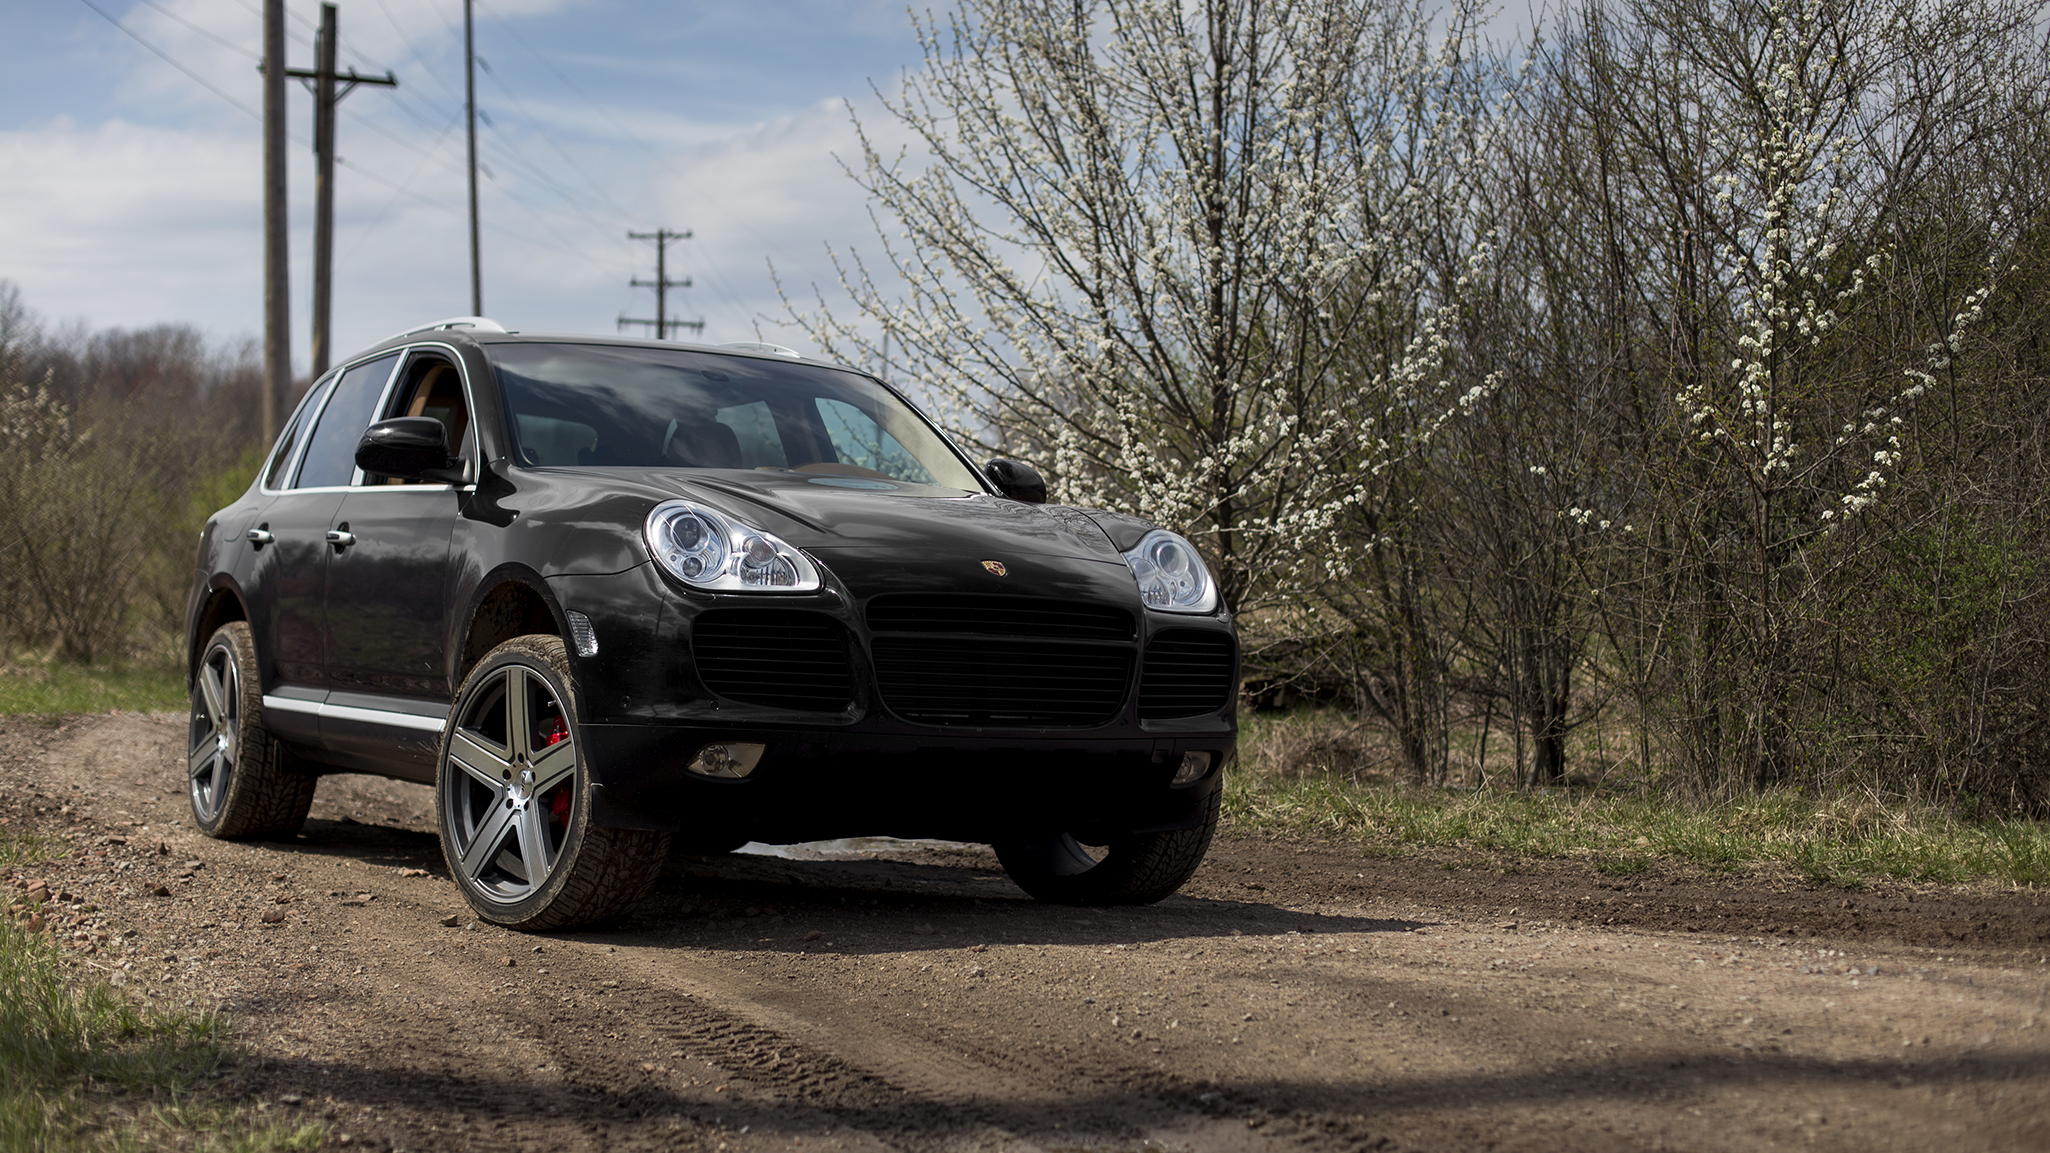 How To Replace Or Upgrade Your Porsche Cayenne S Or Cayenne Turbo Coolant Pipe Ecs Tuning